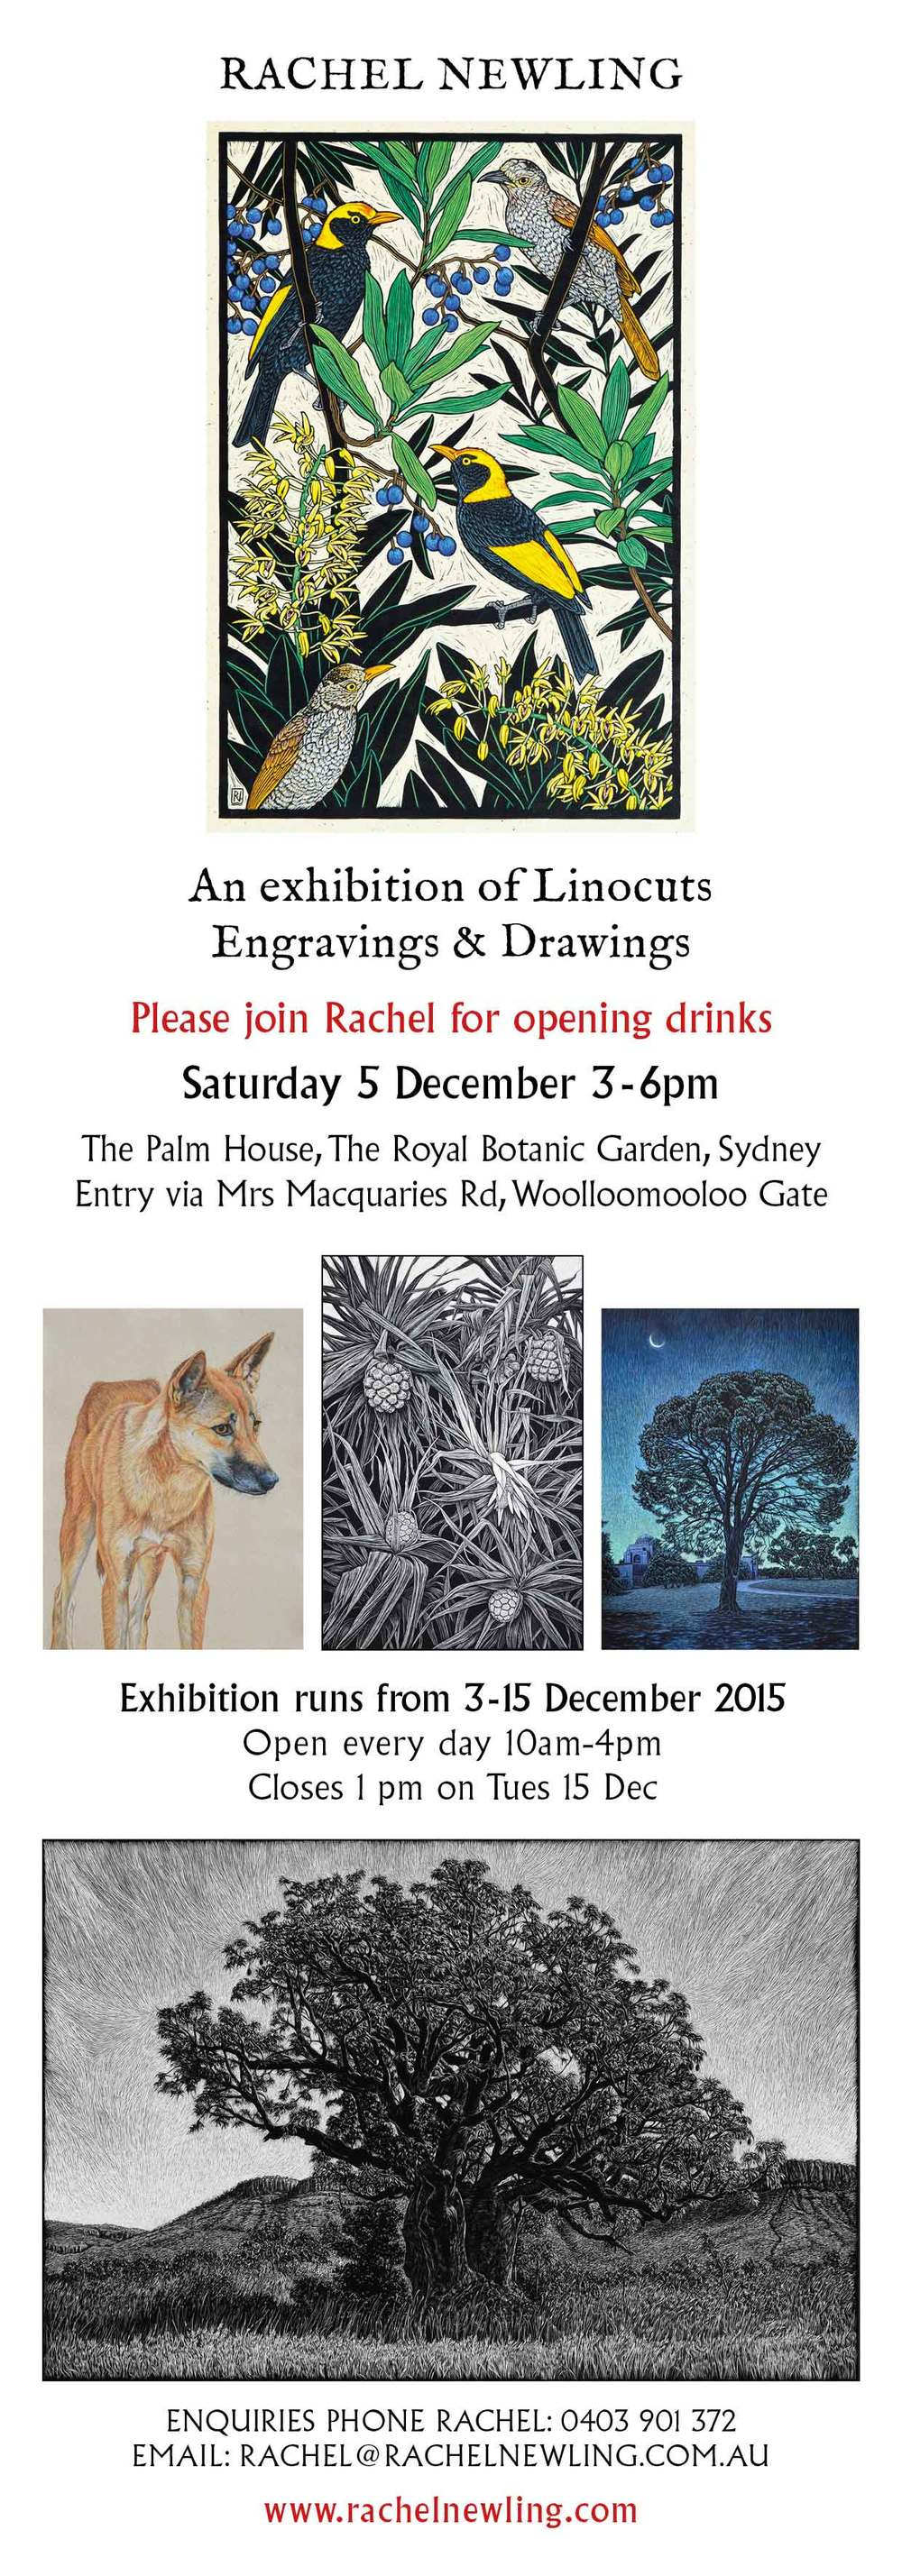 exhibition-invitation-rachel-newling.jpg